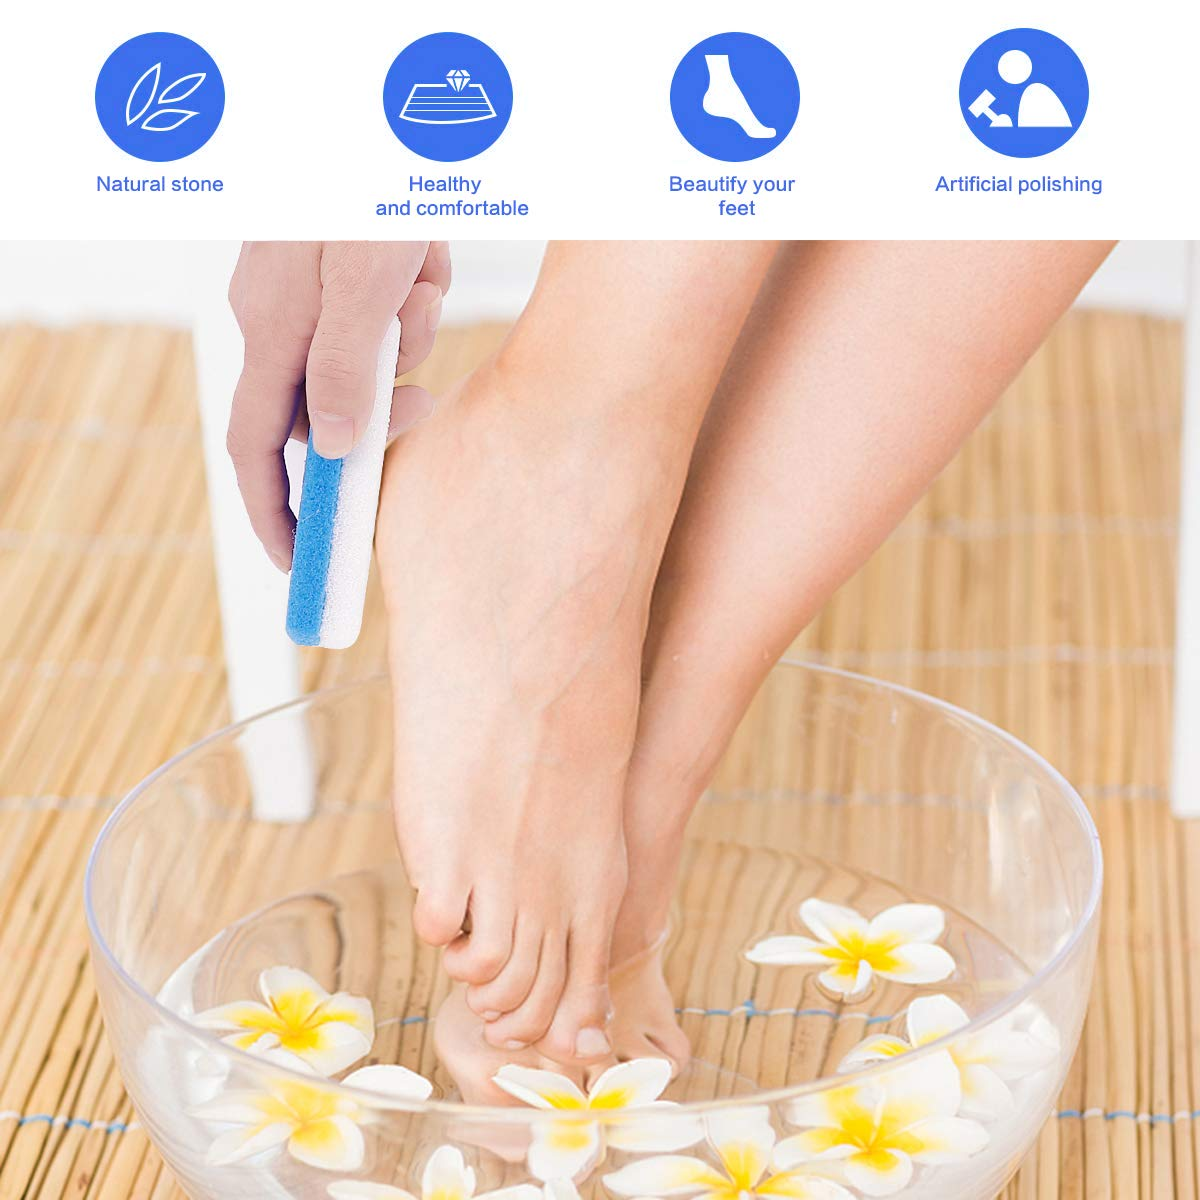 Codream Callus Removers for Feet, 2 in 1 Pumice Stone, Pedicure Stone Scrubber for Smooth Feet, Hands and Body, Foot scrubber & Pedicure Exfoliator Tool (Pack of 4): Beauty